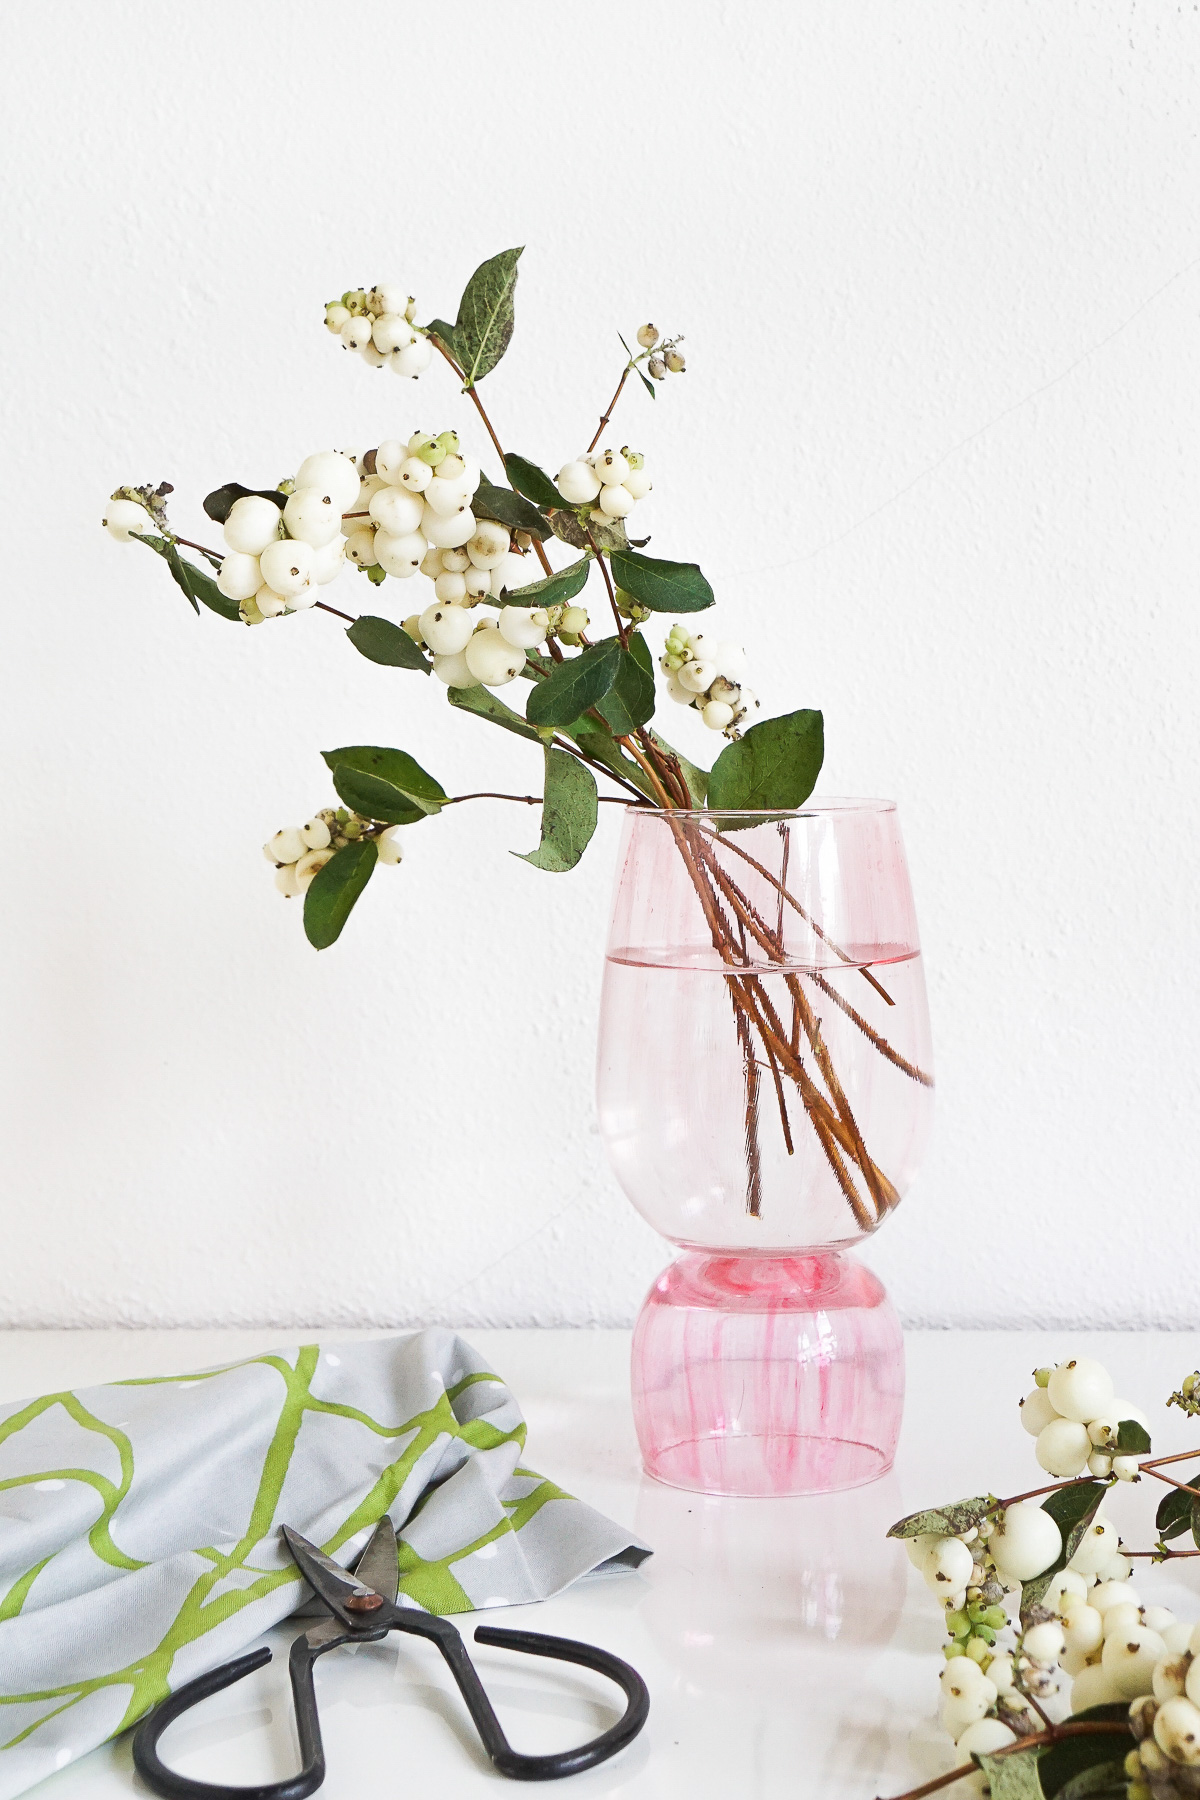 Love this idea from Sugar & Cloth. Perfect gift idea for Mother's Day! Check out my ultimate Mother's Day Gift Guide: Gifts You Can DIY for more ideas like this! #mothersday #giftideas #diygifts